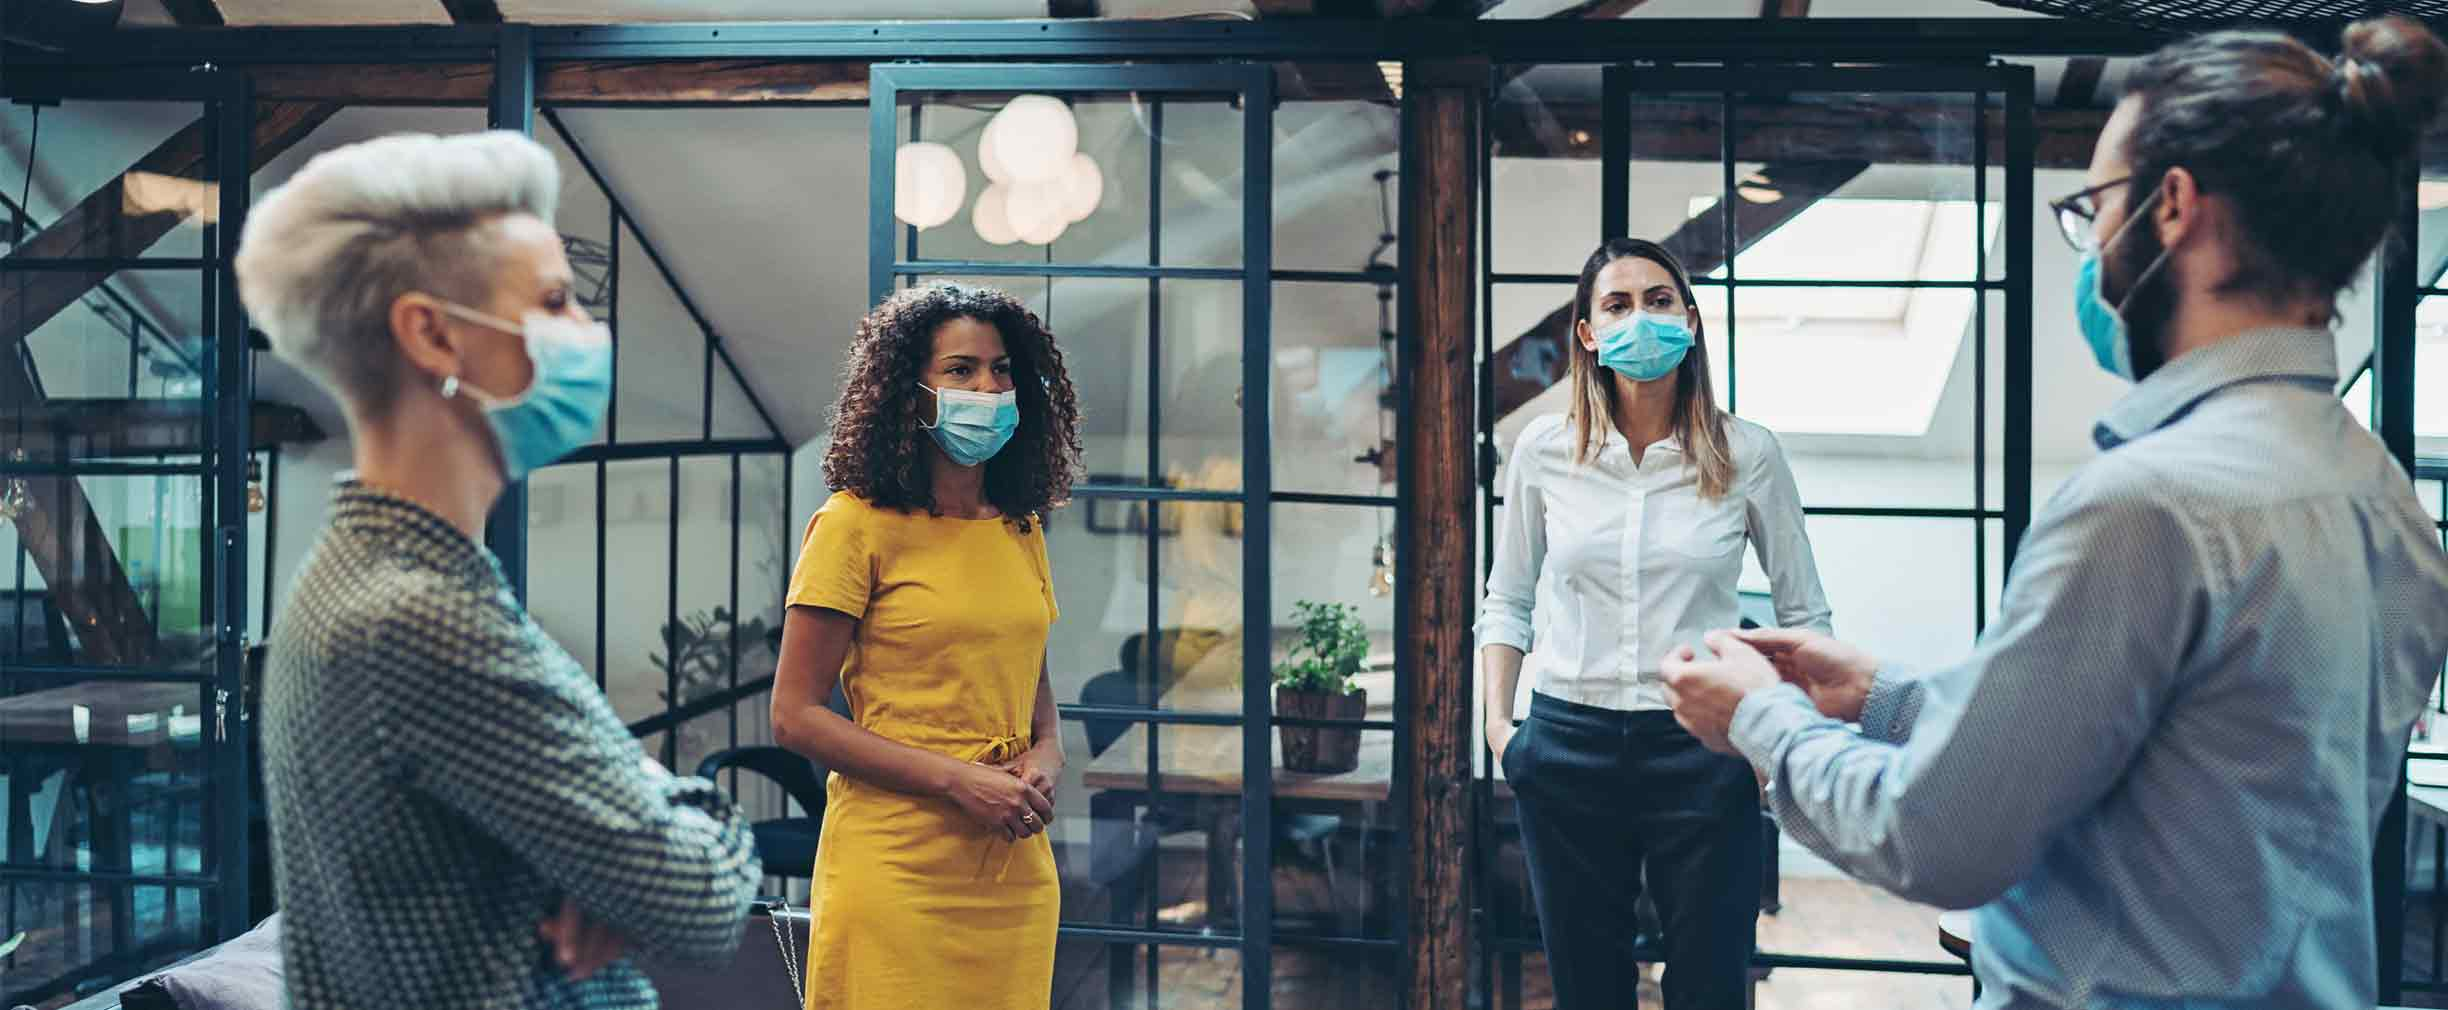 Business persons with protective masks meet in a co-working area